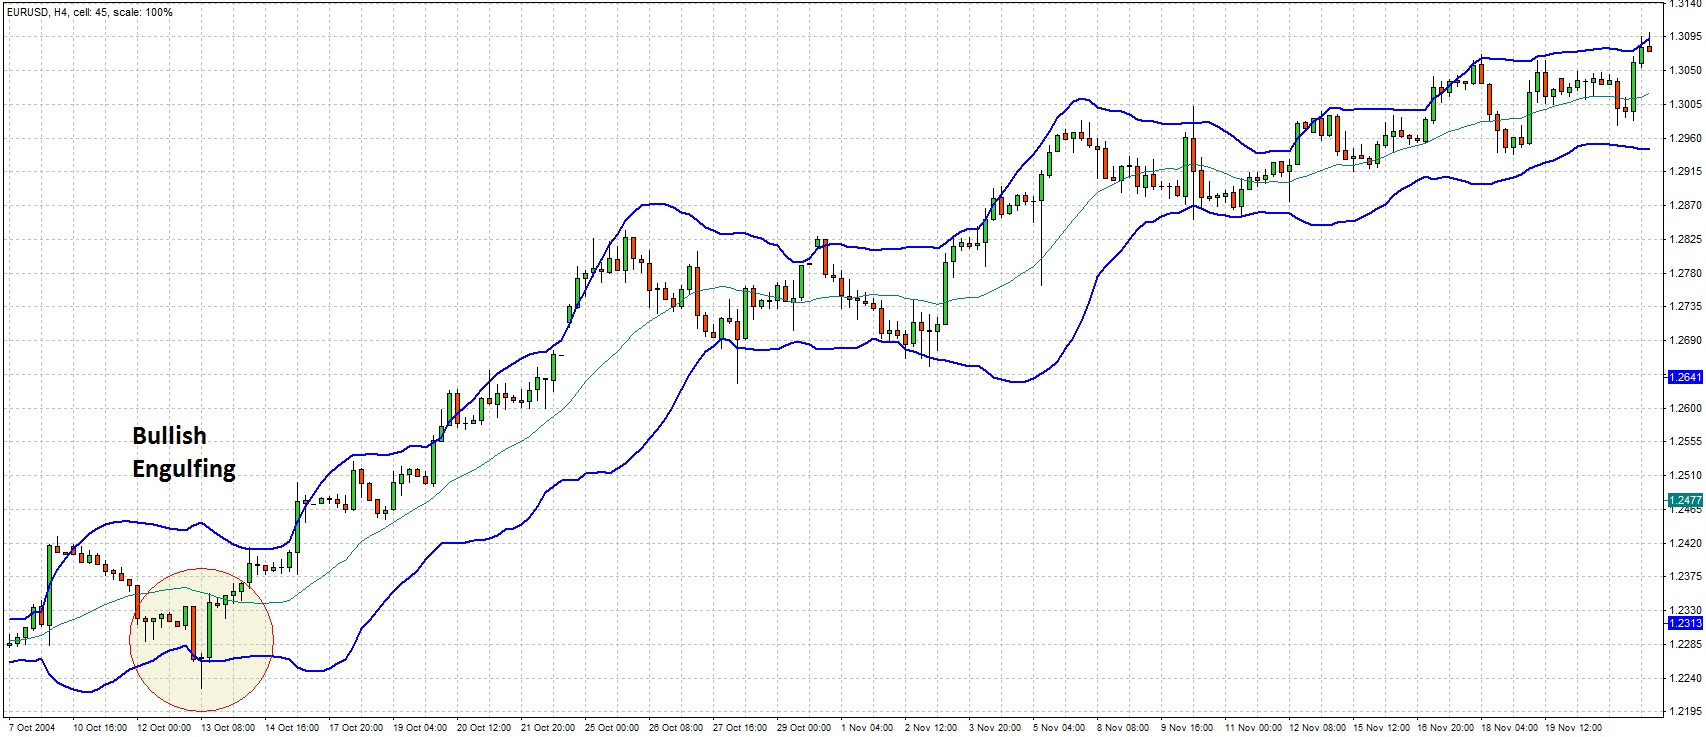 Bollinger Bands reversal with engulfing candle